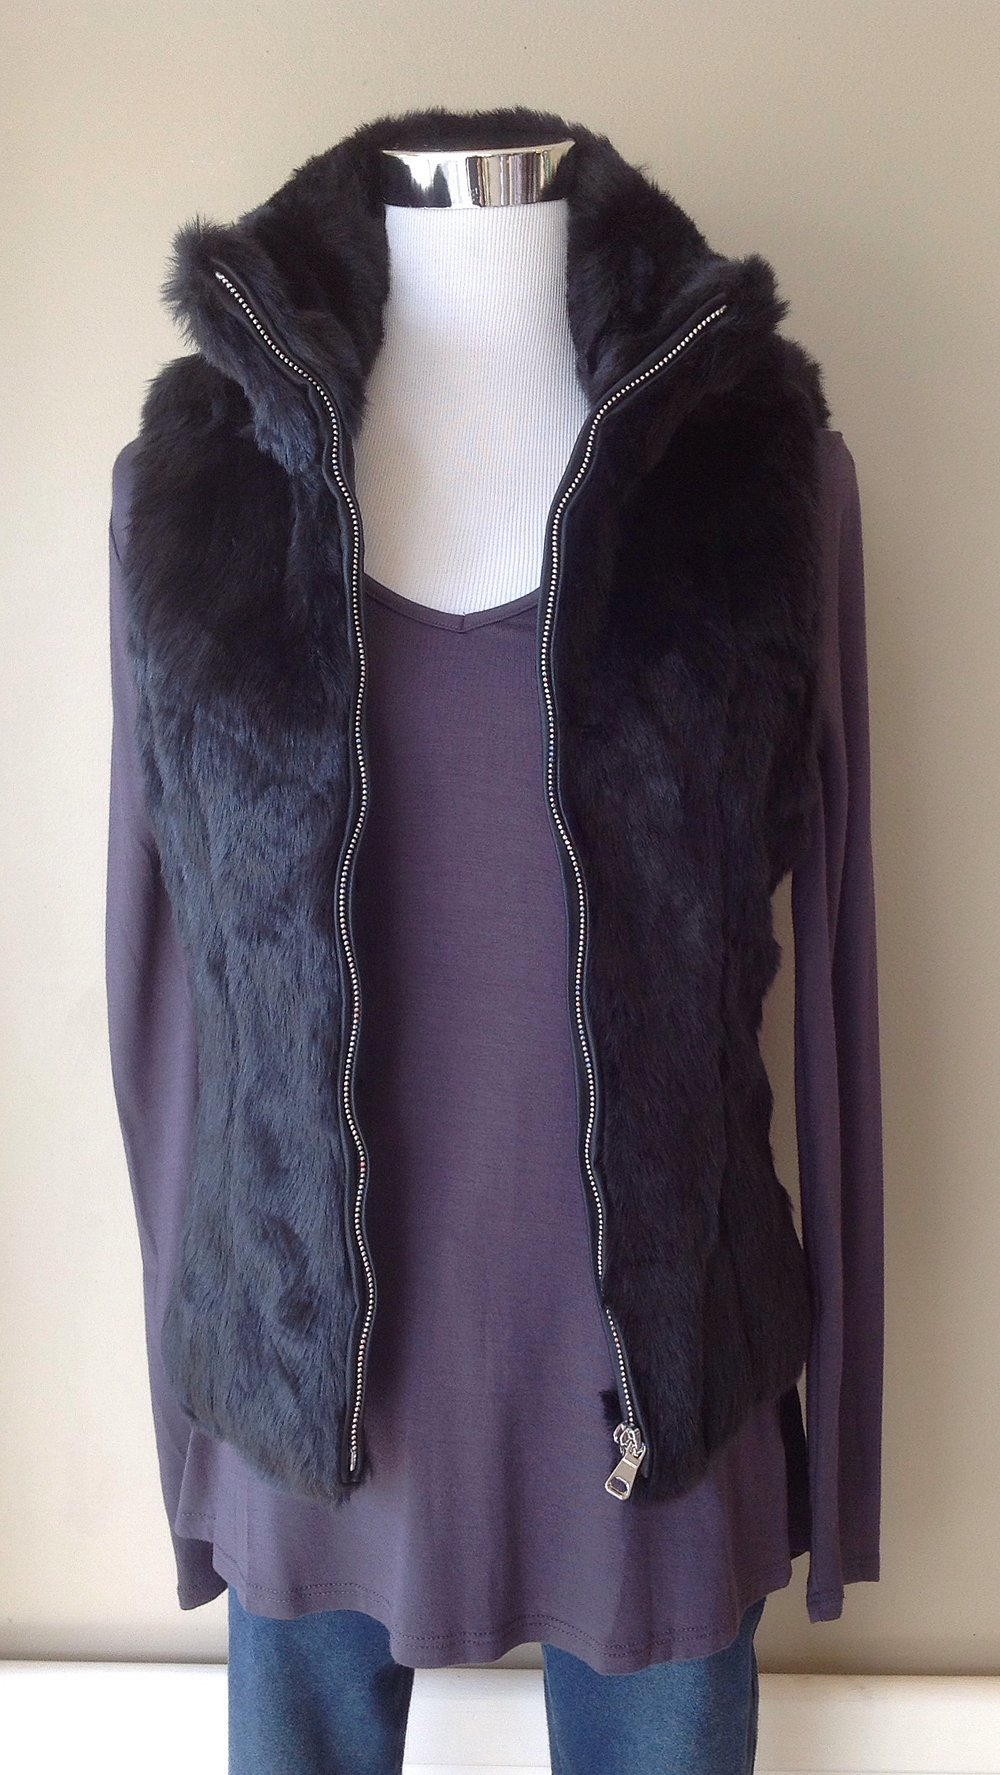 Zip front faux fur vest in black, $48